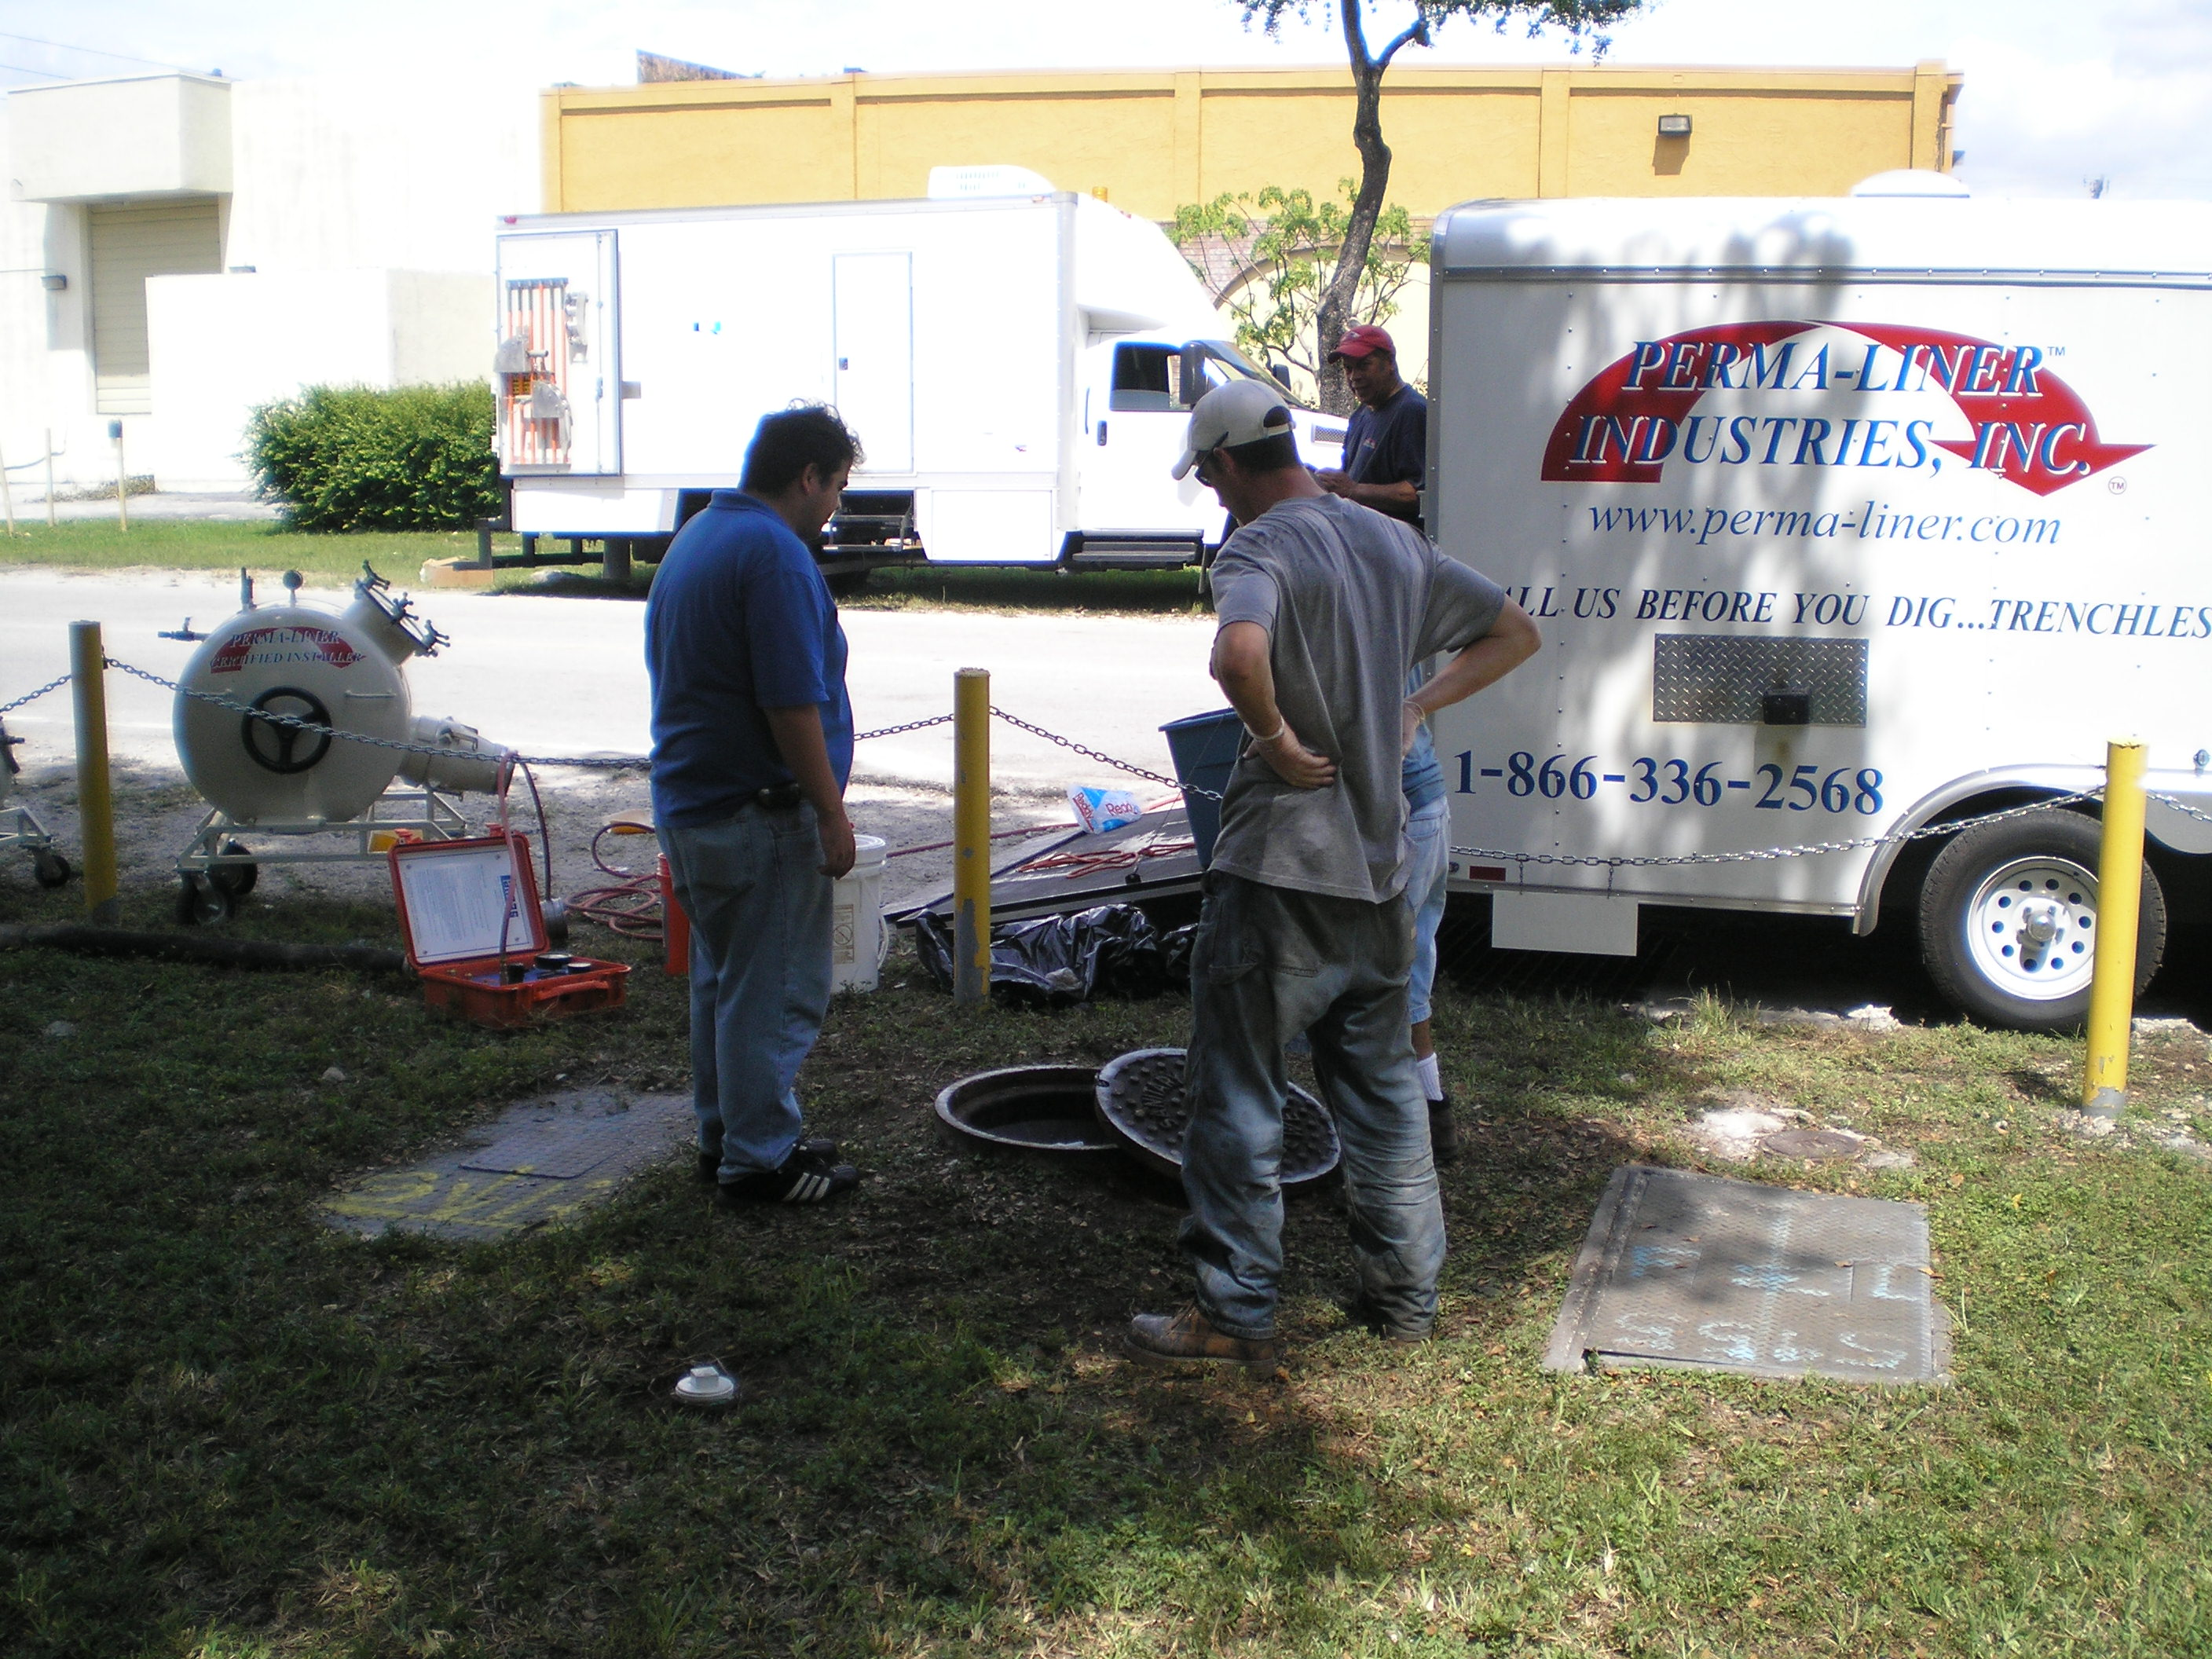 Save Your Money Sacramento, Go Trenchless!